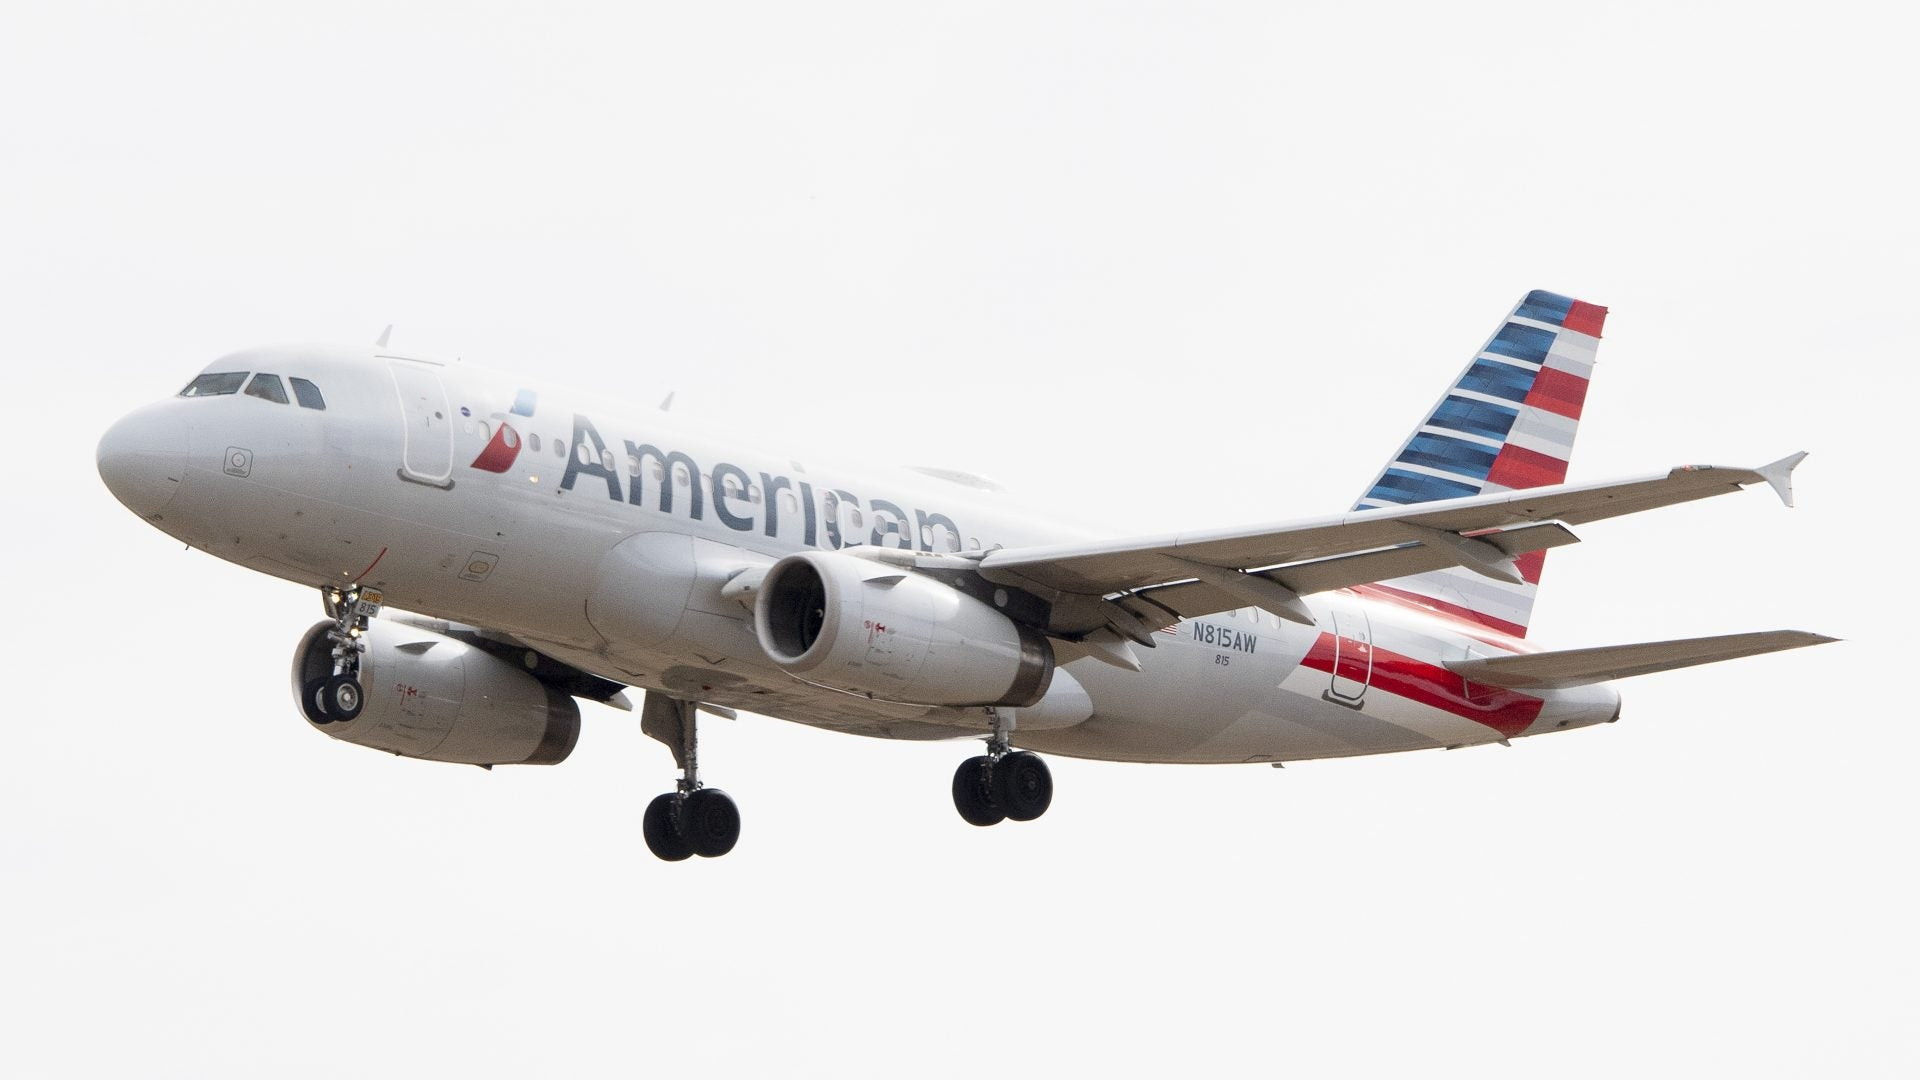 American Airlines Apologizes After Forcing Woman To 'Cover Up' Or Get Off Flight